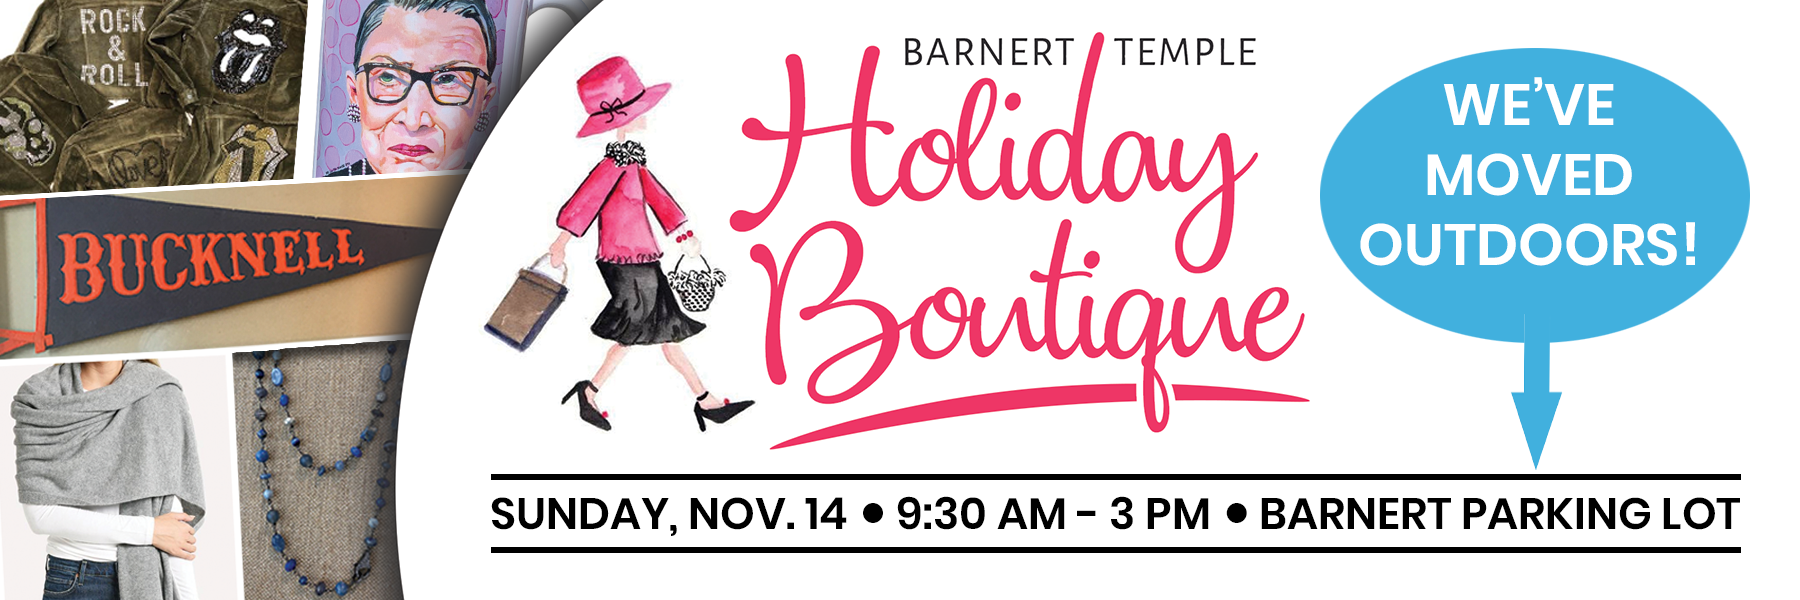 """<a href=""""https://www.barnerttemple.org/event/holidayboutique21""""                                     target=""""_blank"""">                                                                 <span class=""""slider_title"""">                                     Save the Date & Shop With Us!                                </span>                                                                 </a>                                                                                                                                                                                       <span class=""""slider_description"""">We're so excited to bring our Holiday Boutique back and bring it outdoors for safe shopping.  Open to all!  Click above for details.</span>"""